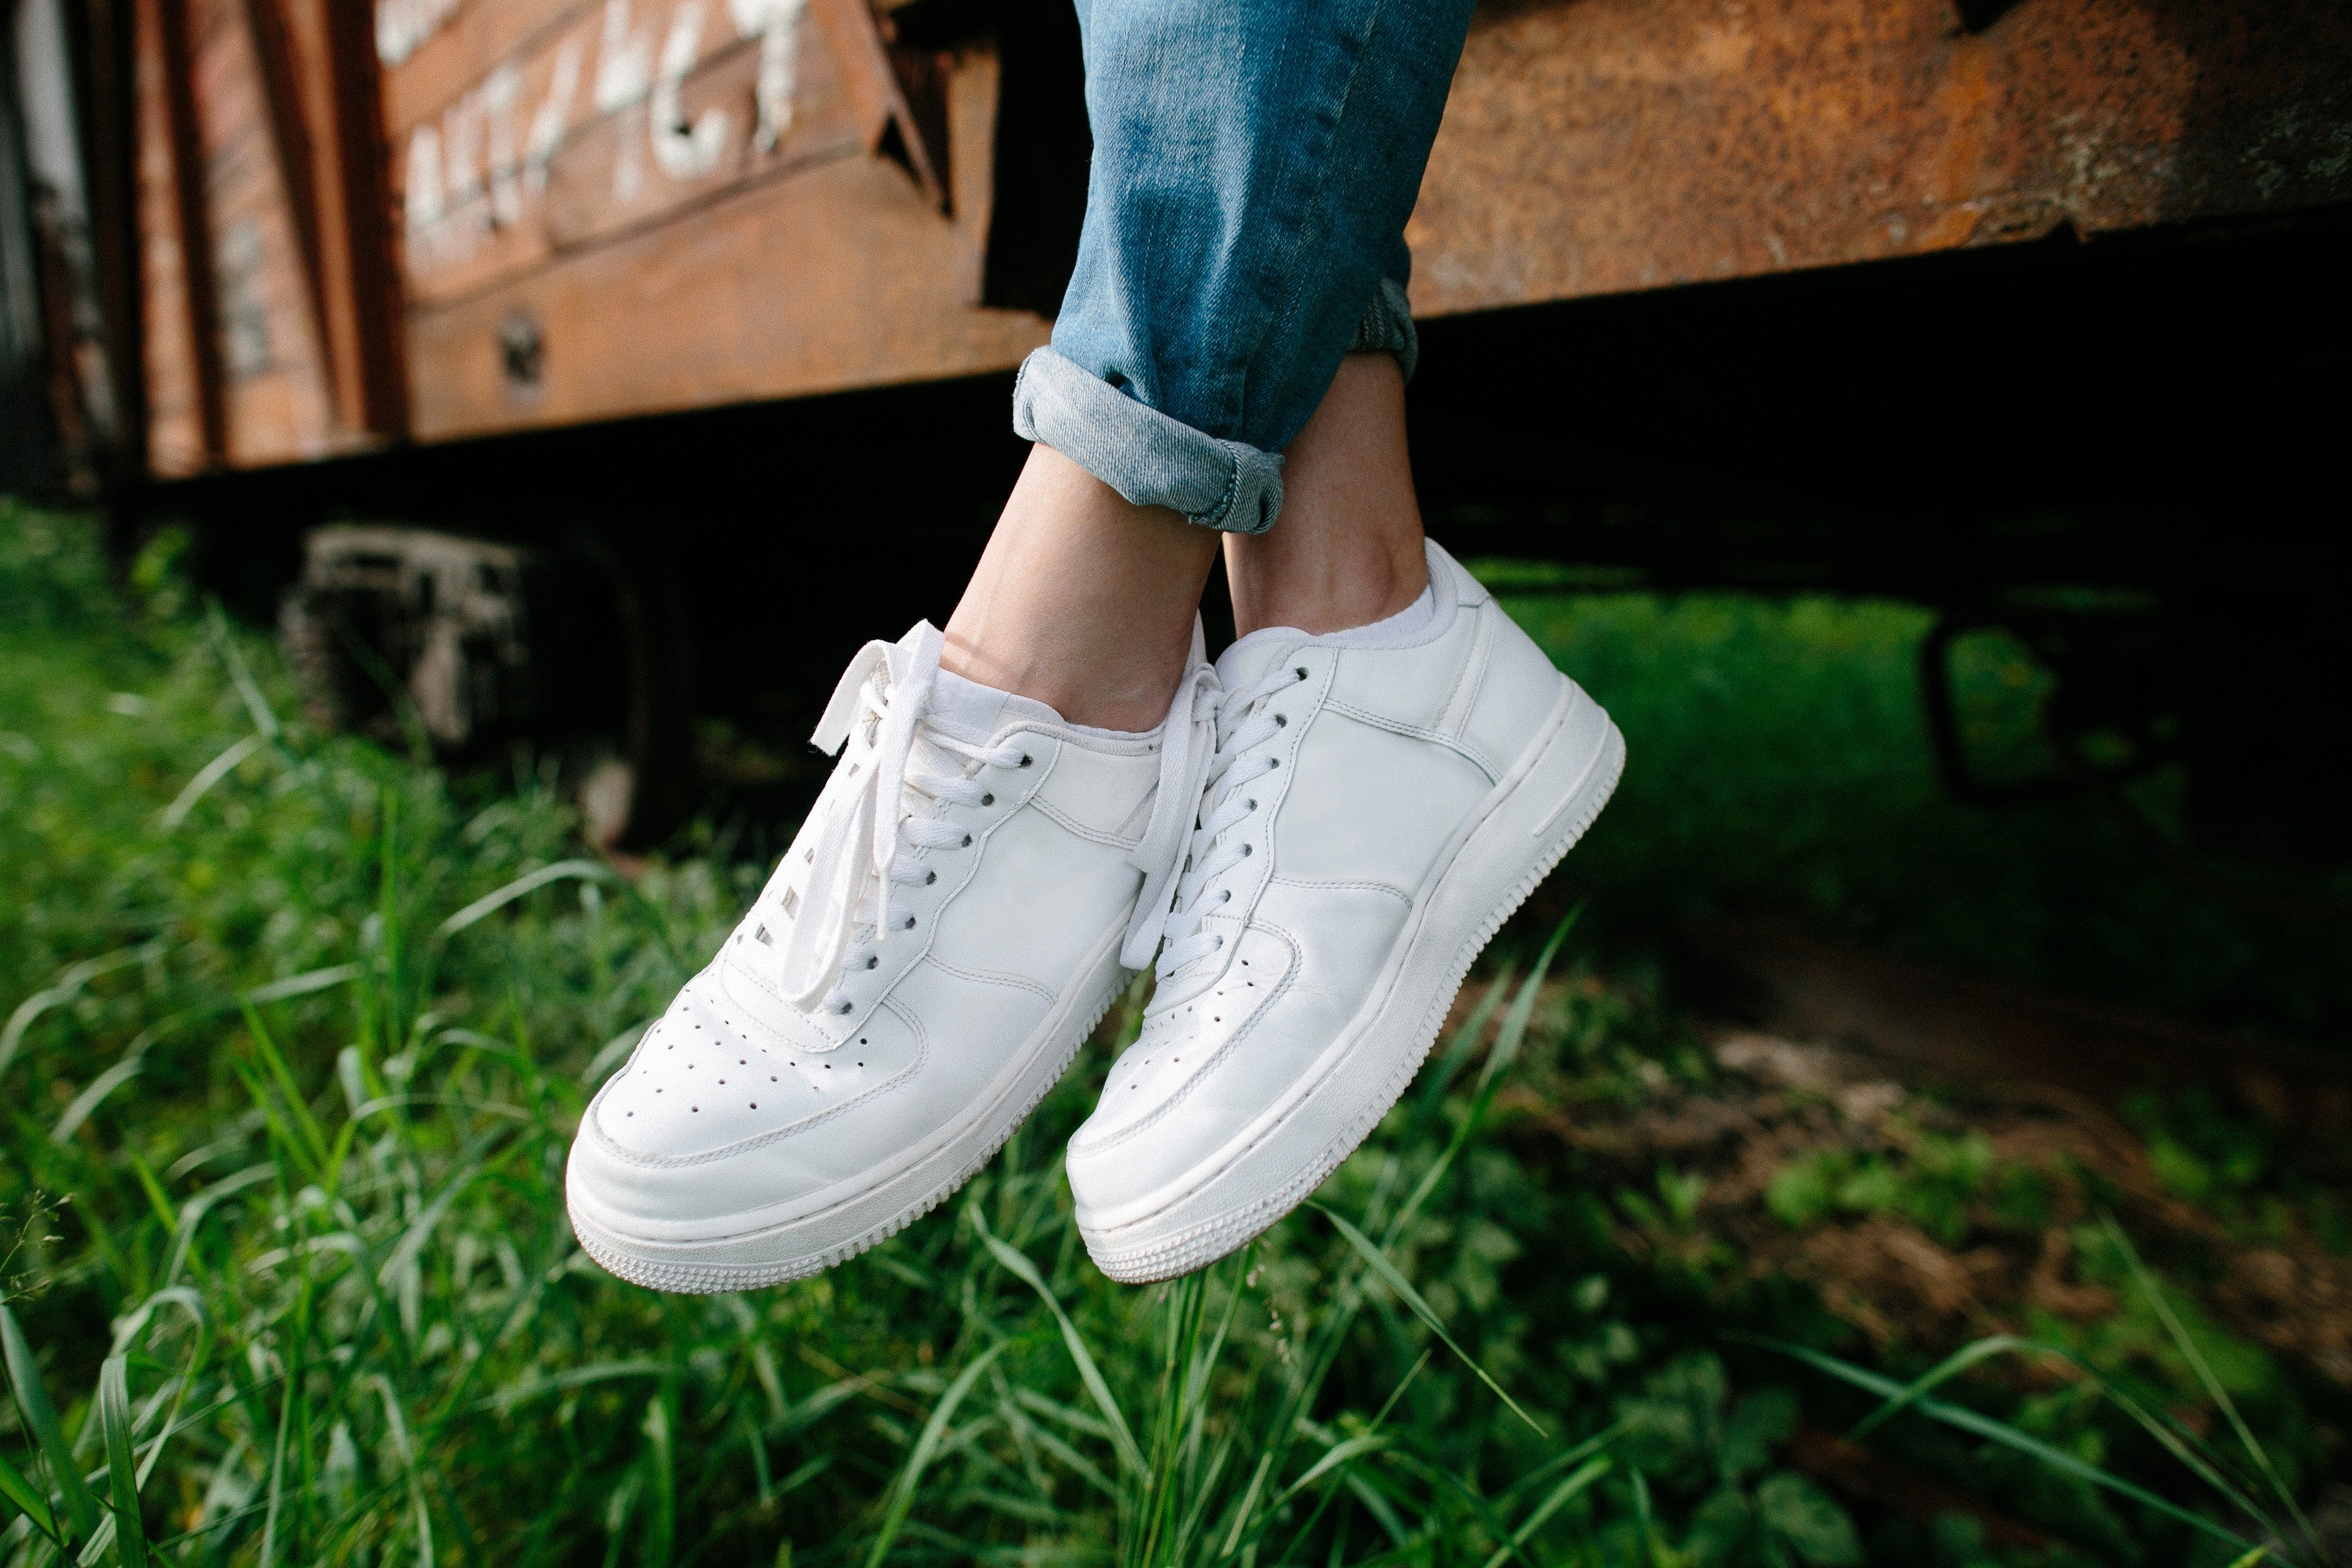 Female sneakers. White female shoes on feet. Sneakers closeup.